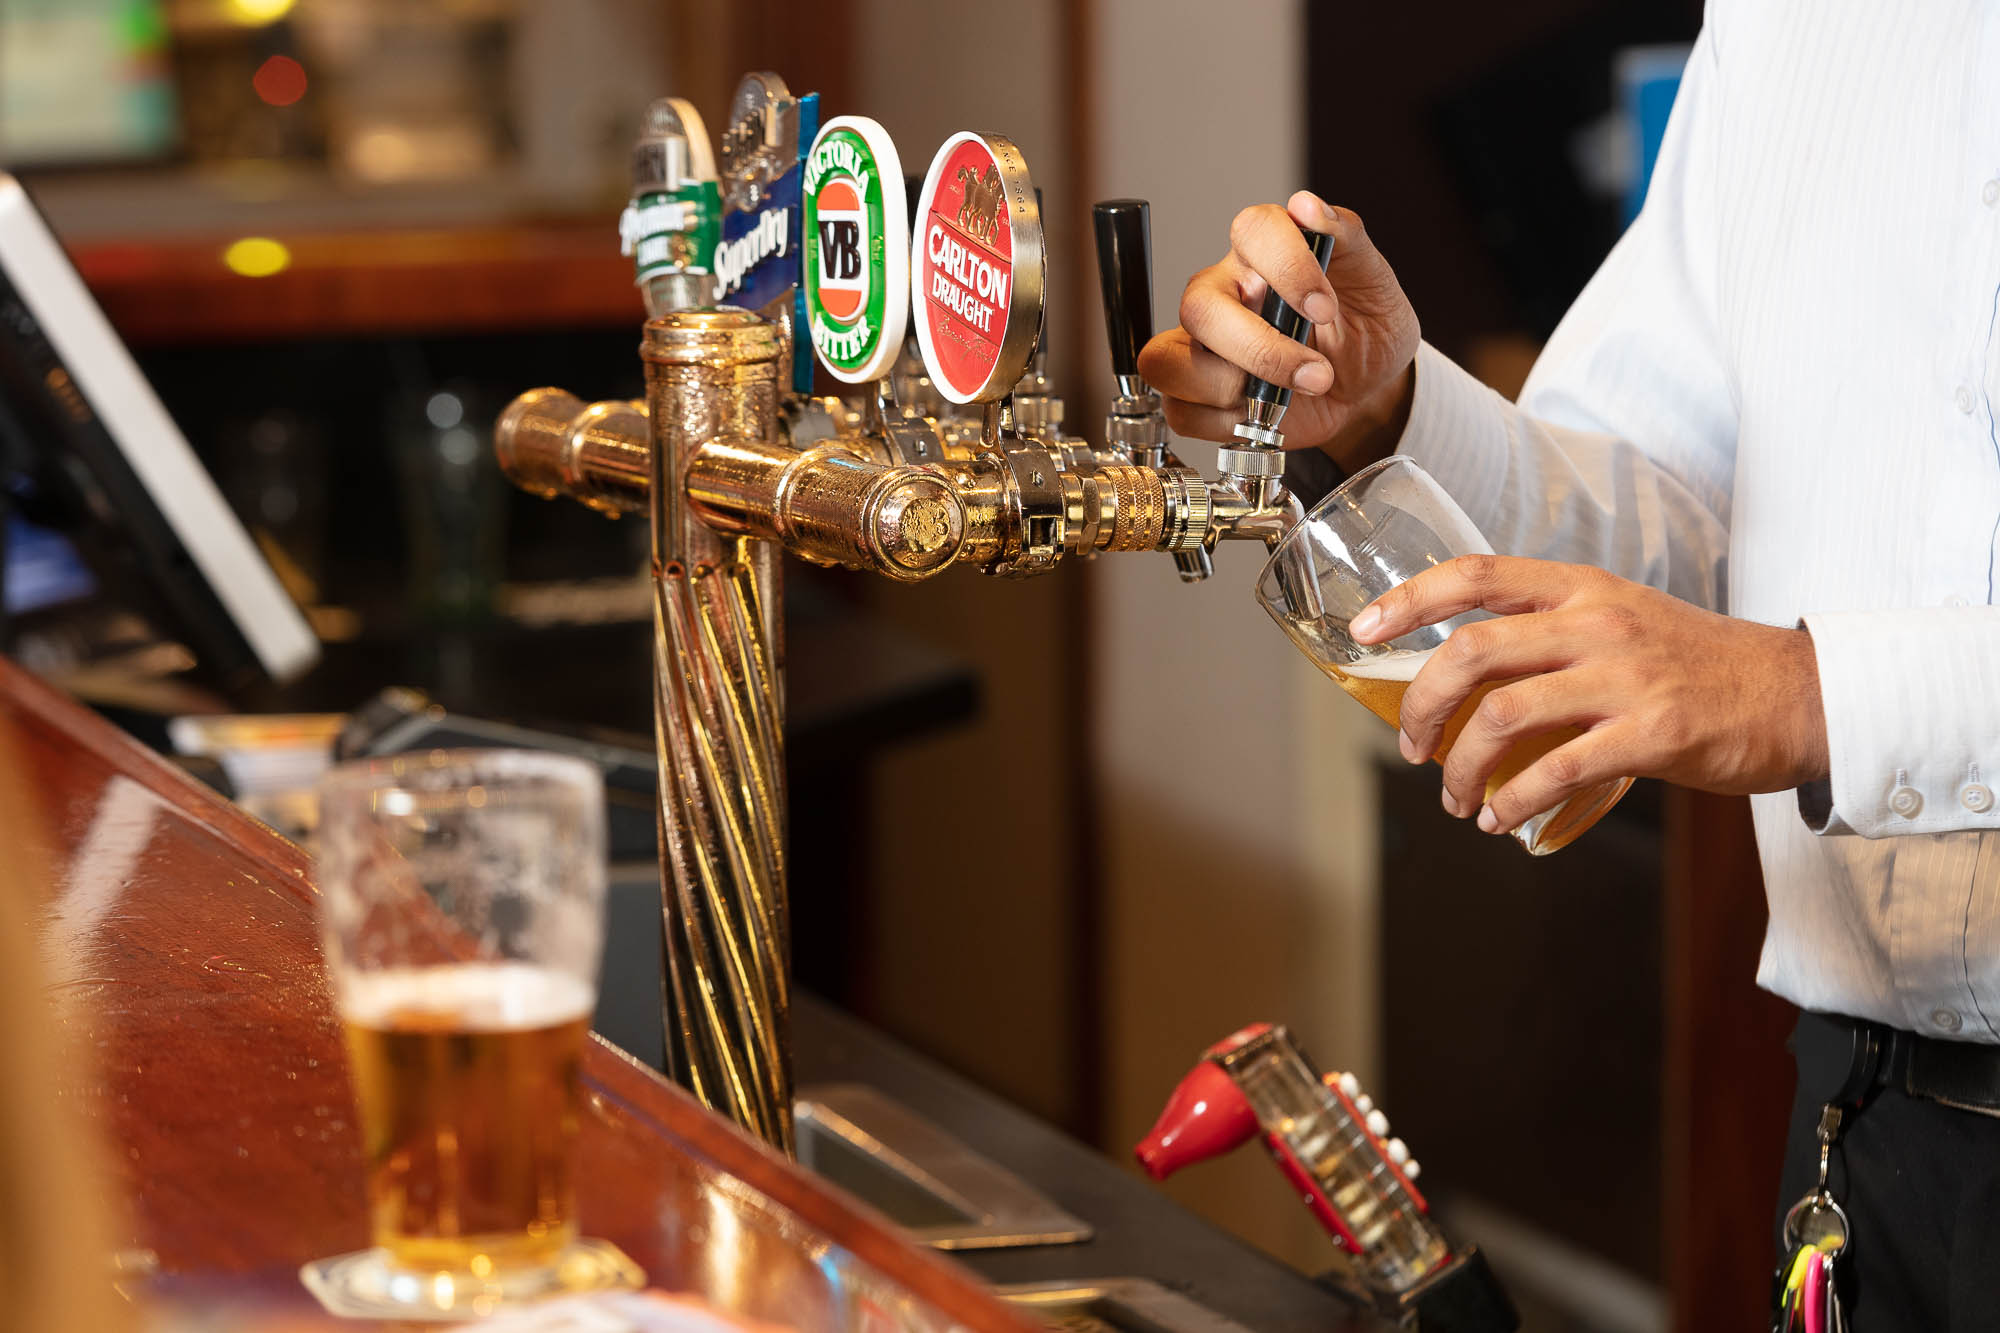 Commercial Bar photography sample - serving beer